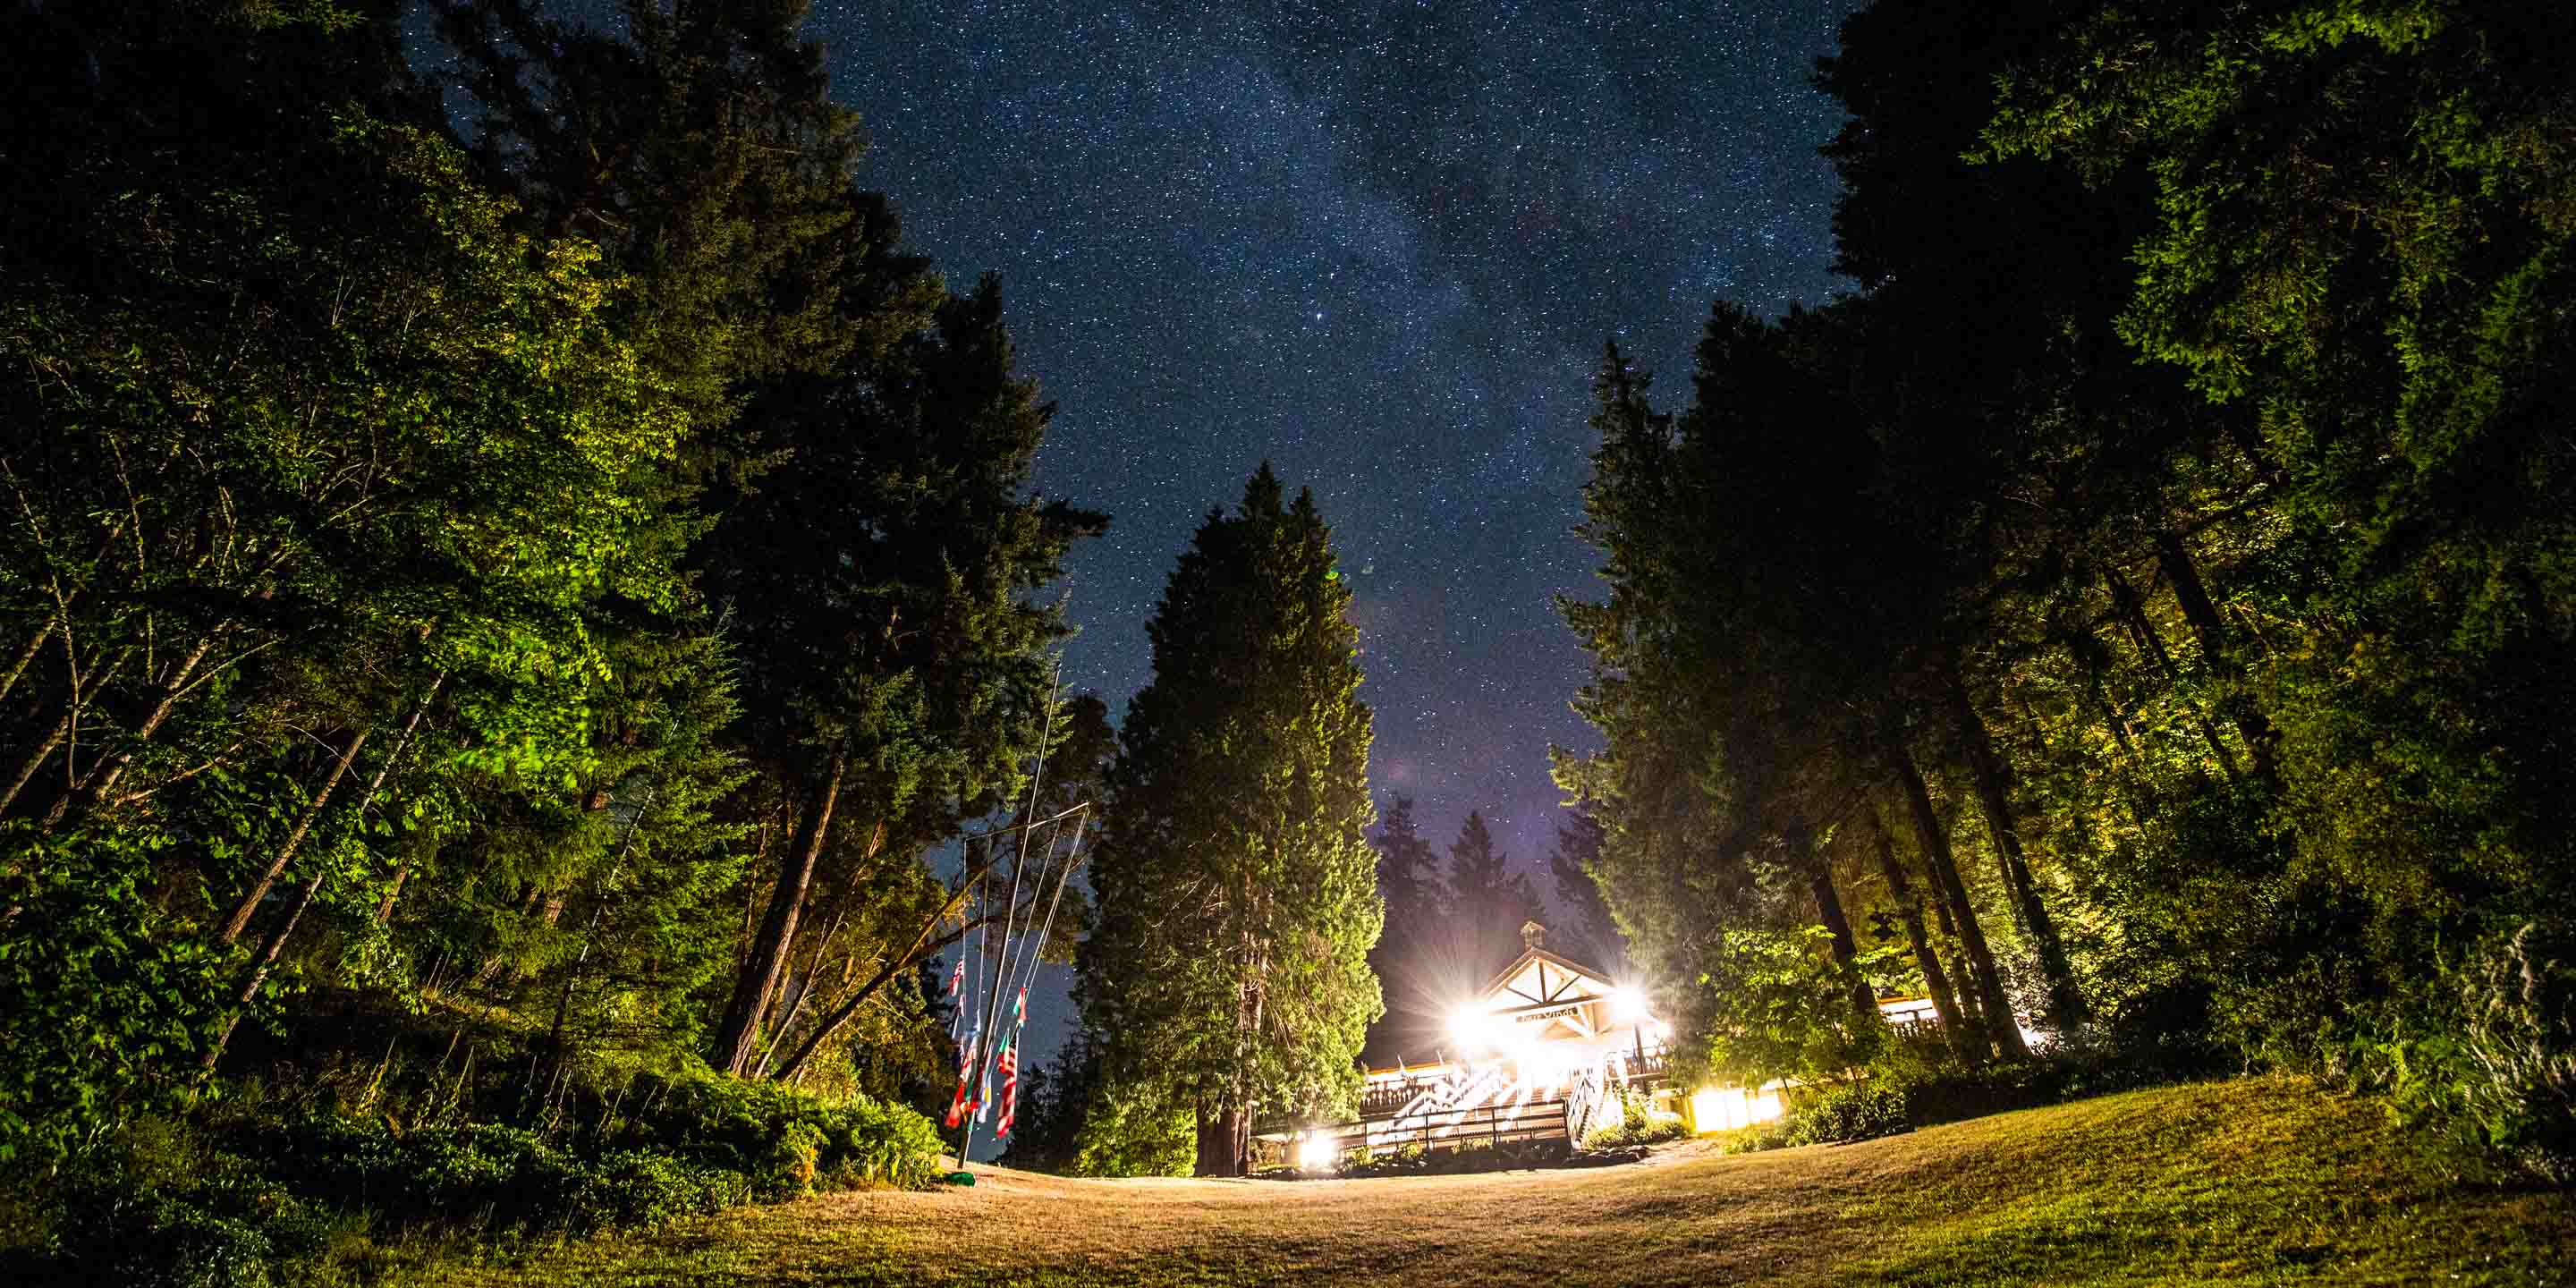 Wide view of Four Winds lodge and stars at night